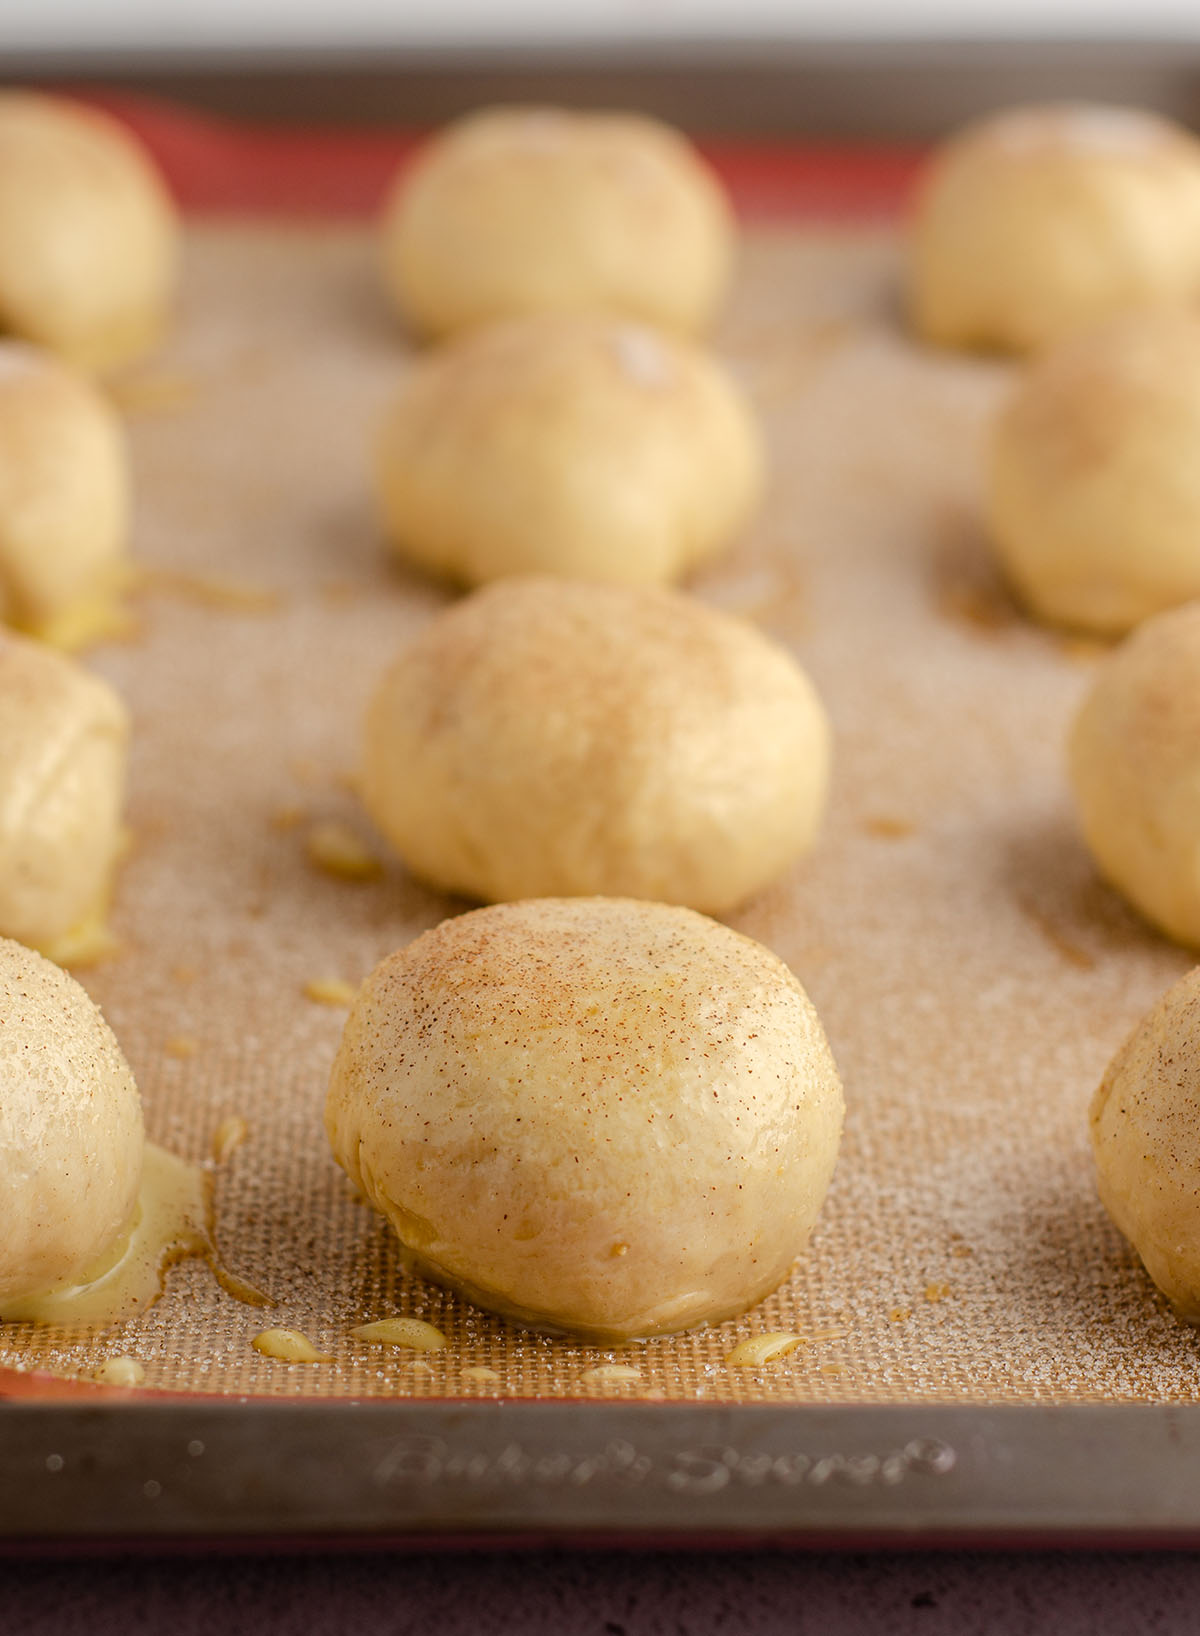 rolls brushed with an egg wash and sprinkled with cardamom-cinnamon-sugar on a baking sheet ready to bake